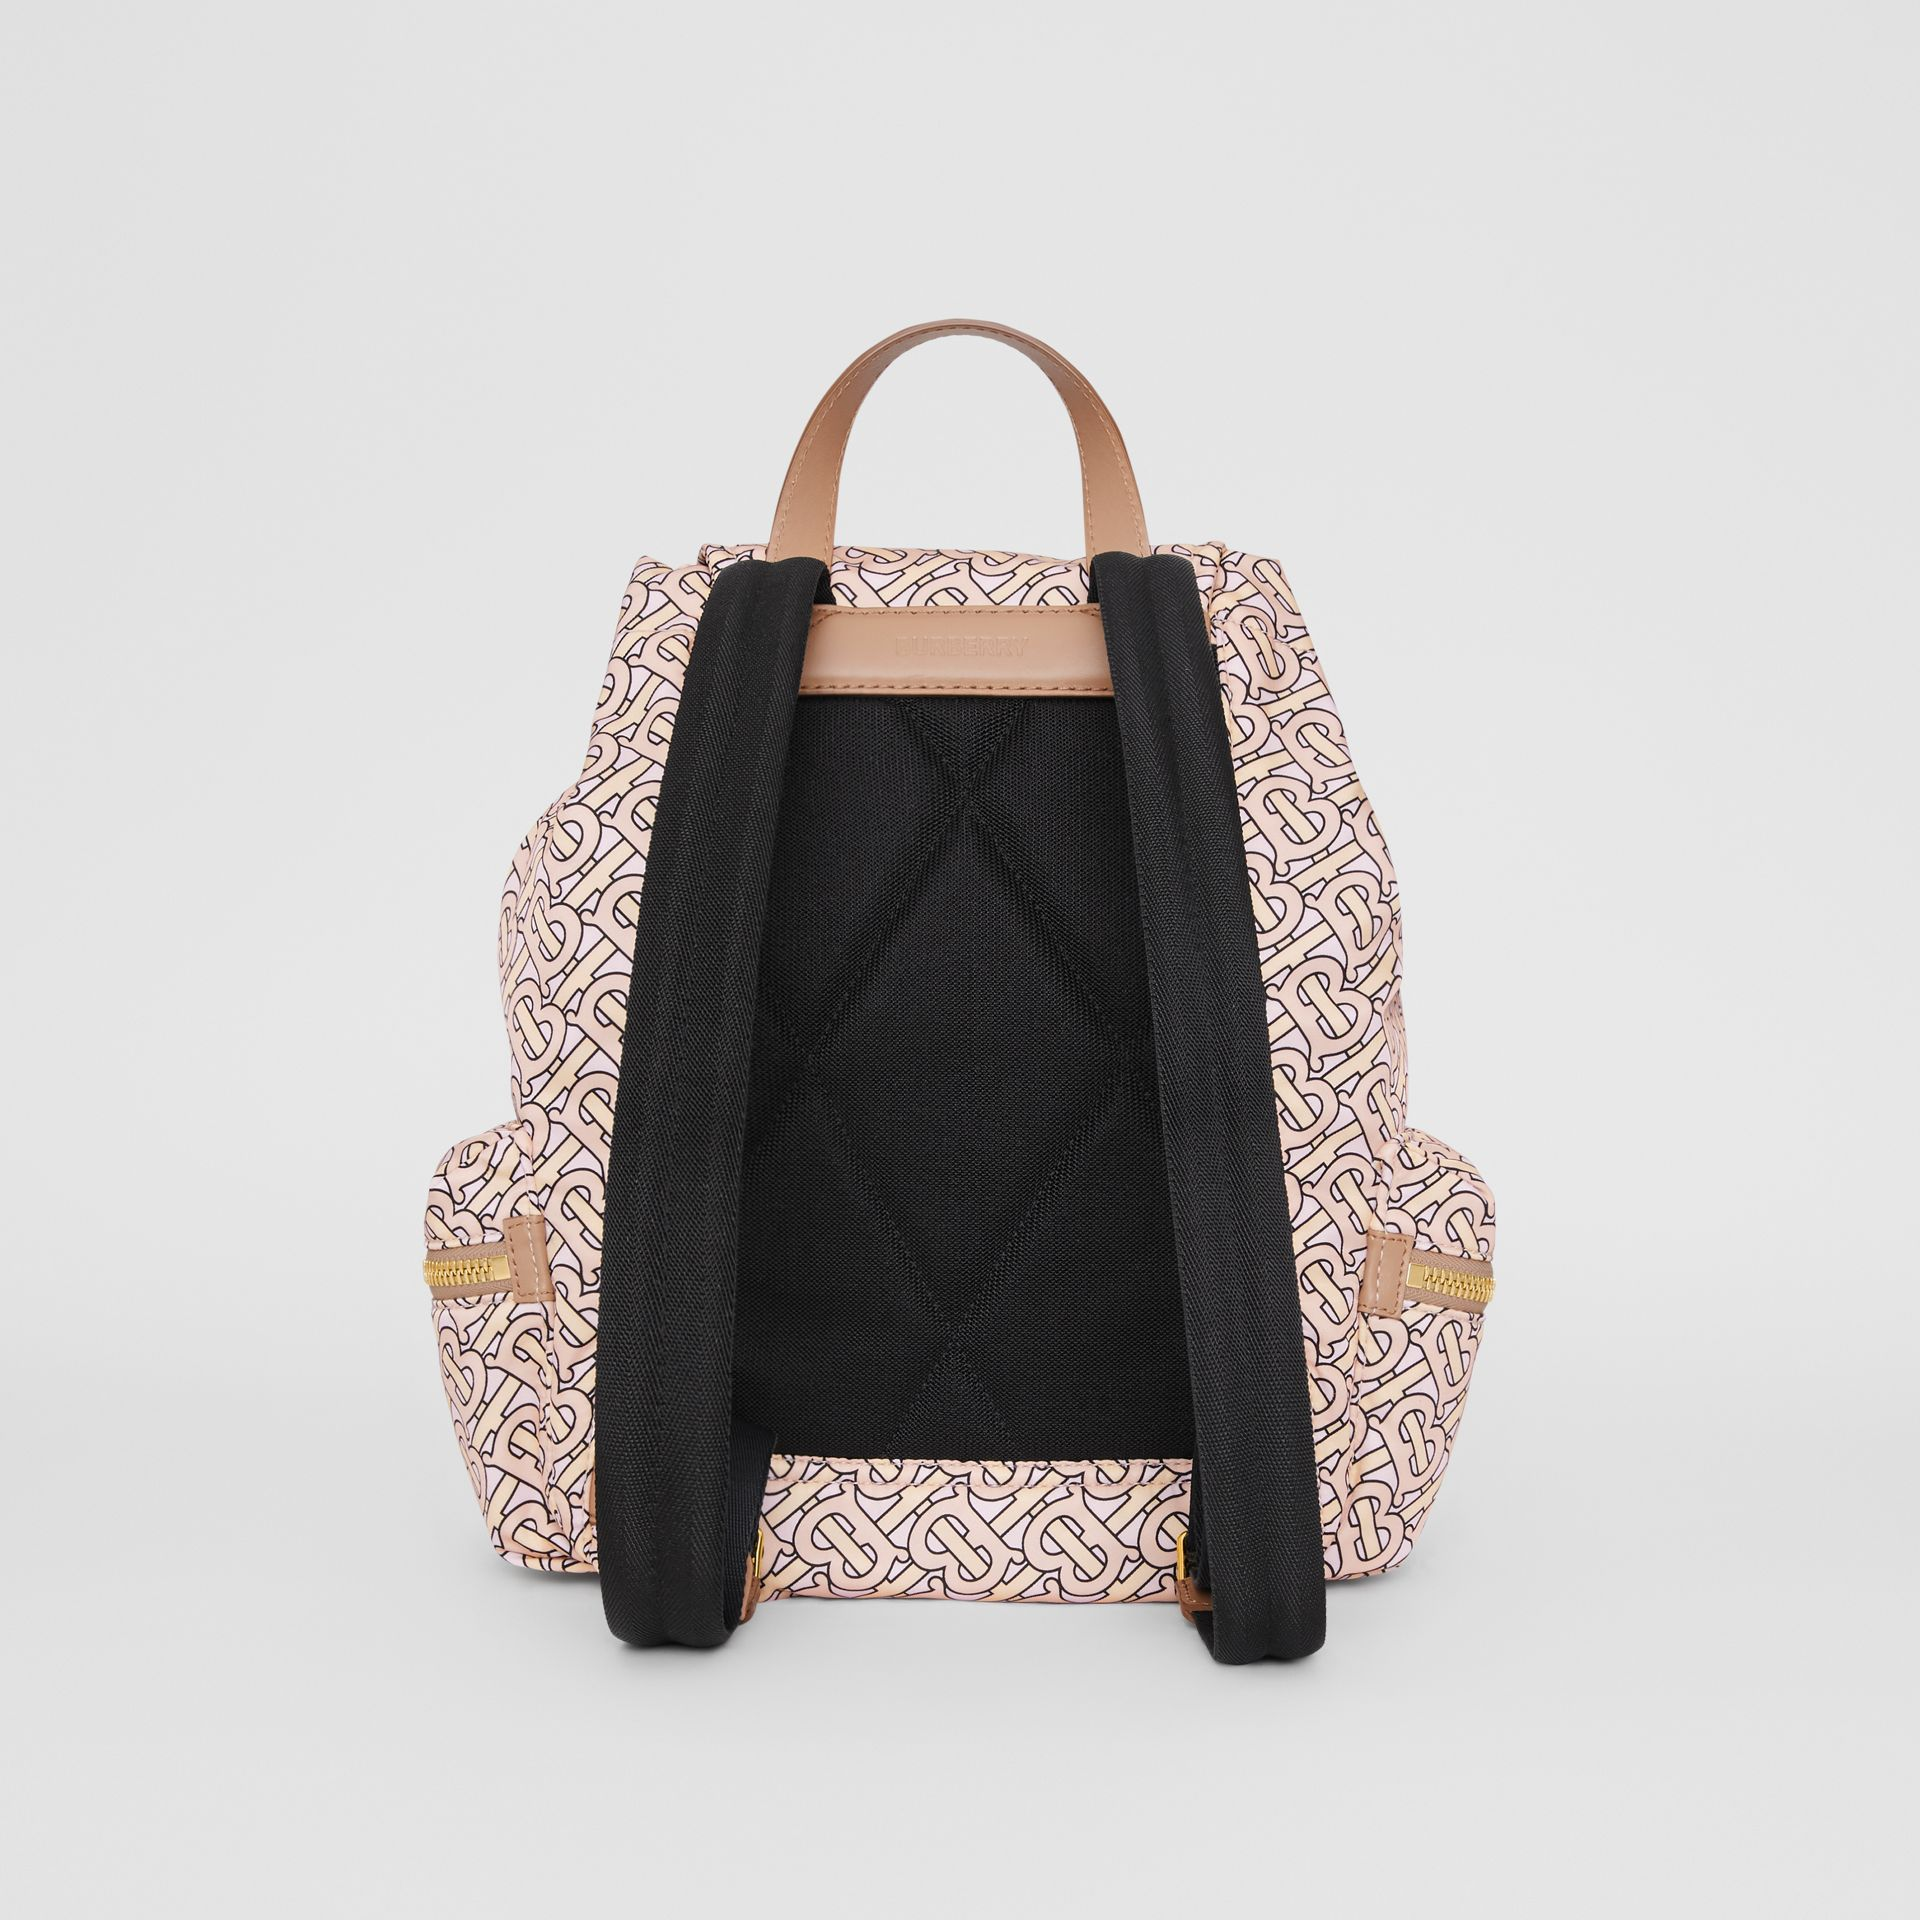 Sac The Rucksack moyen en nylon Monogram (Blush) - Femme | Burberry Canada - photo de la galerie 5